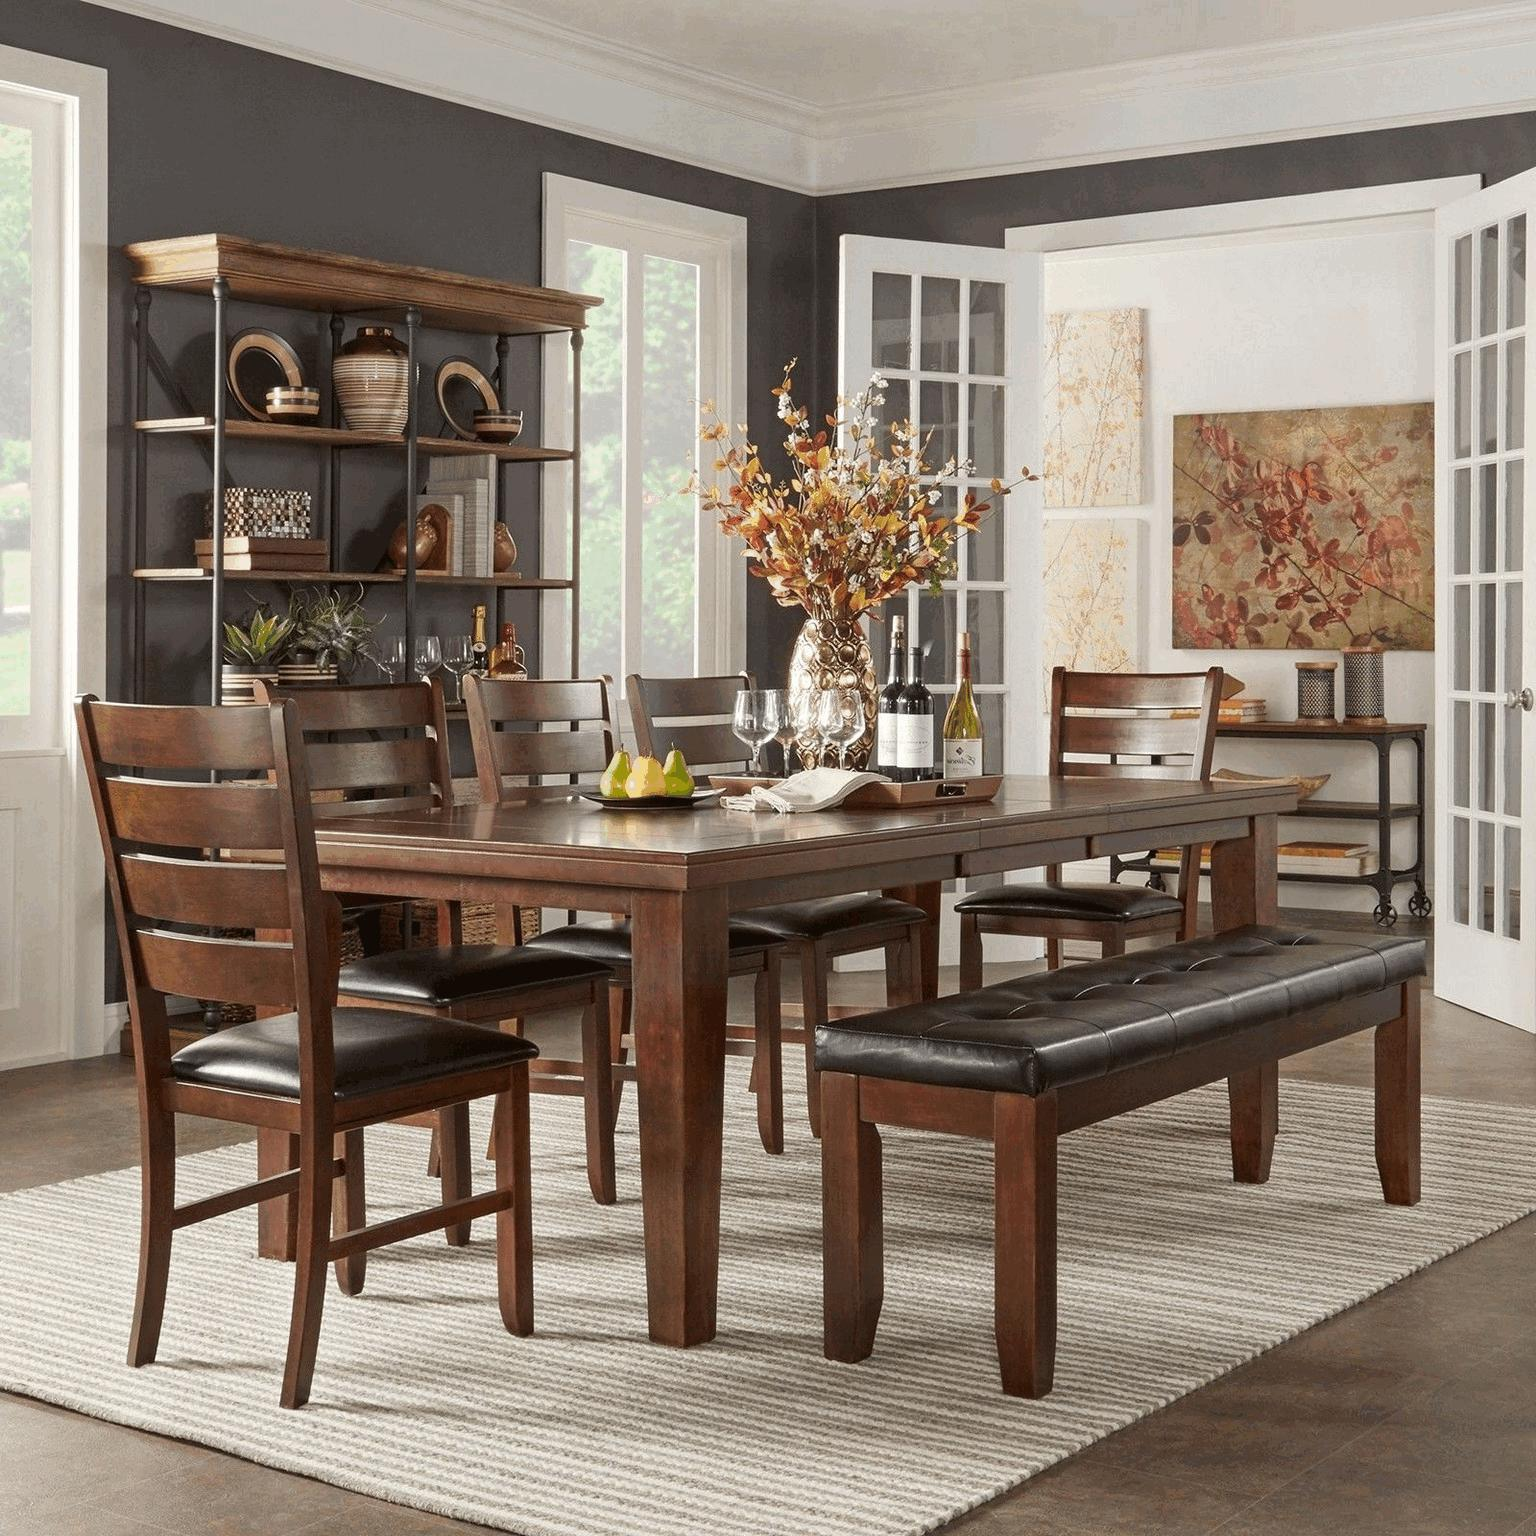 √ 6 amazing dining room paint colors ideas